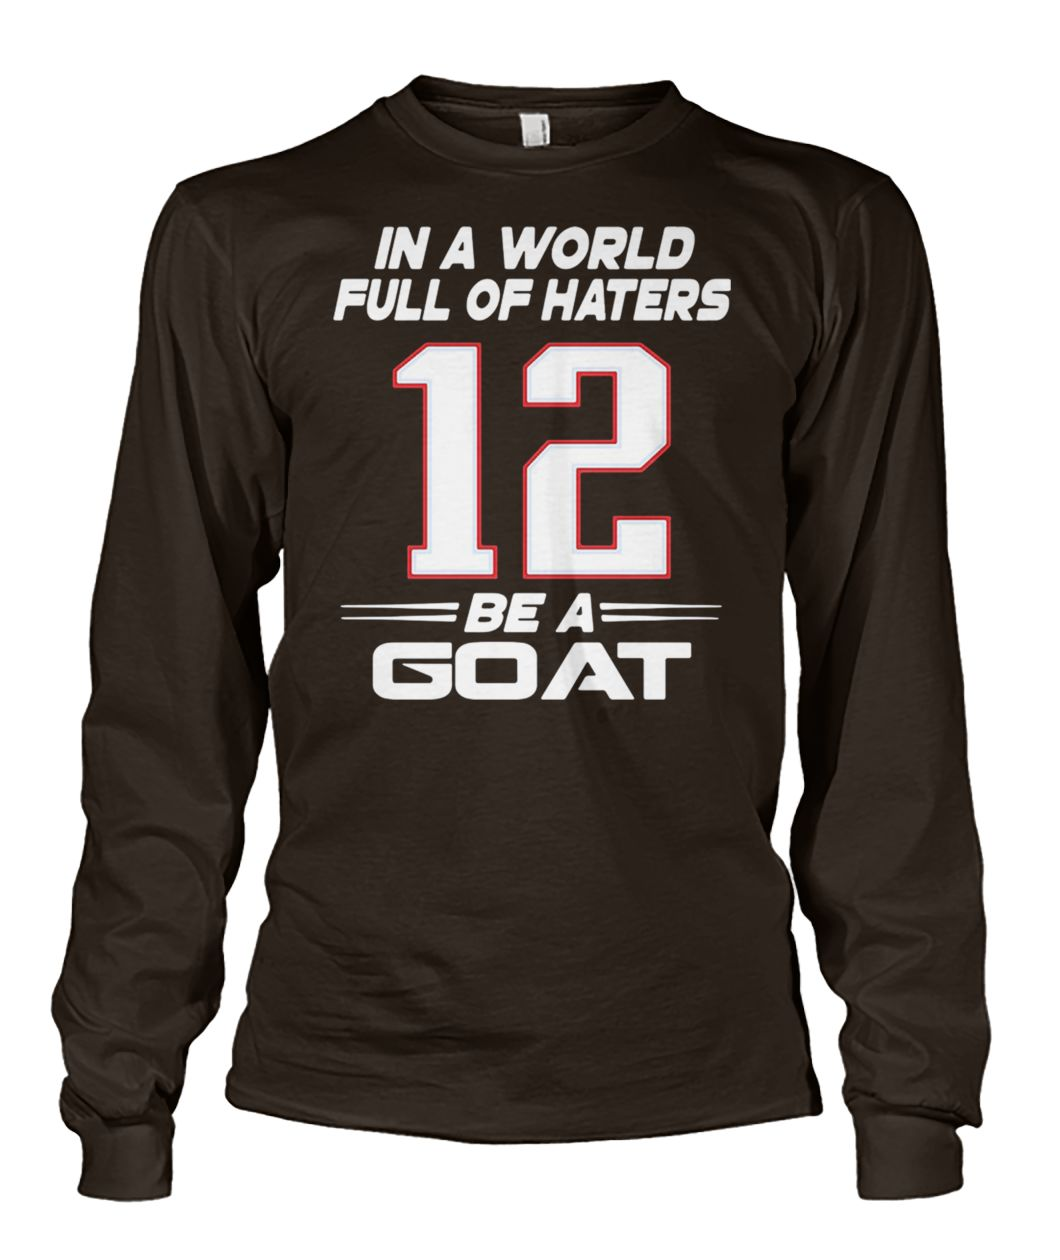 Tom brady 12 in a world full of hates be a goat unisex long sleeve